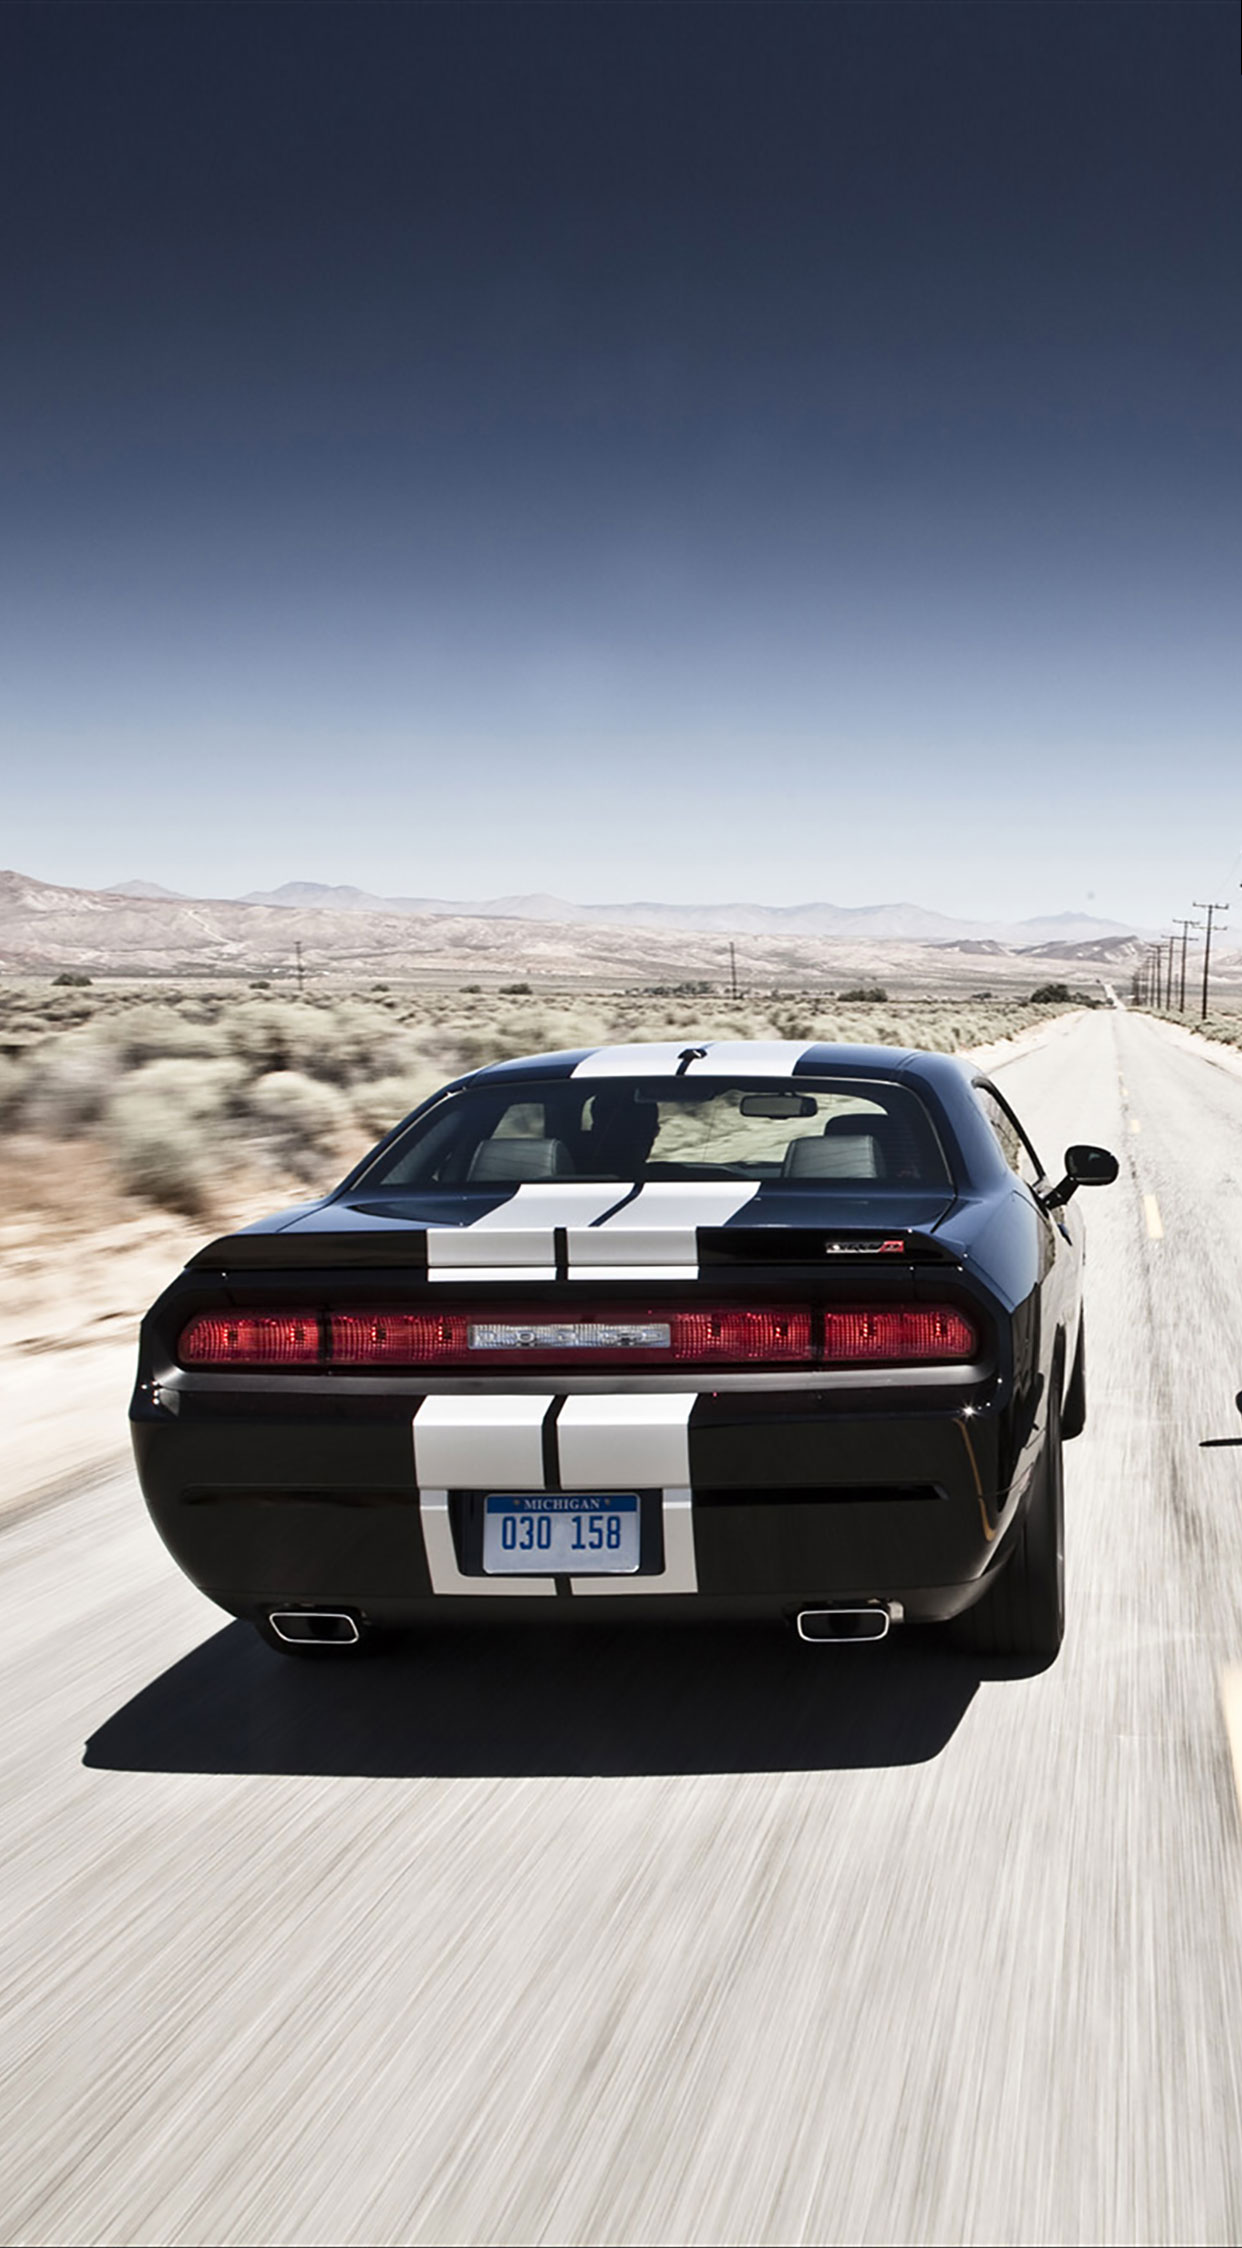 Girl With Balloons Wallpaper Dodge Challenger Back Wallpaper For Iphone X 8 7 6